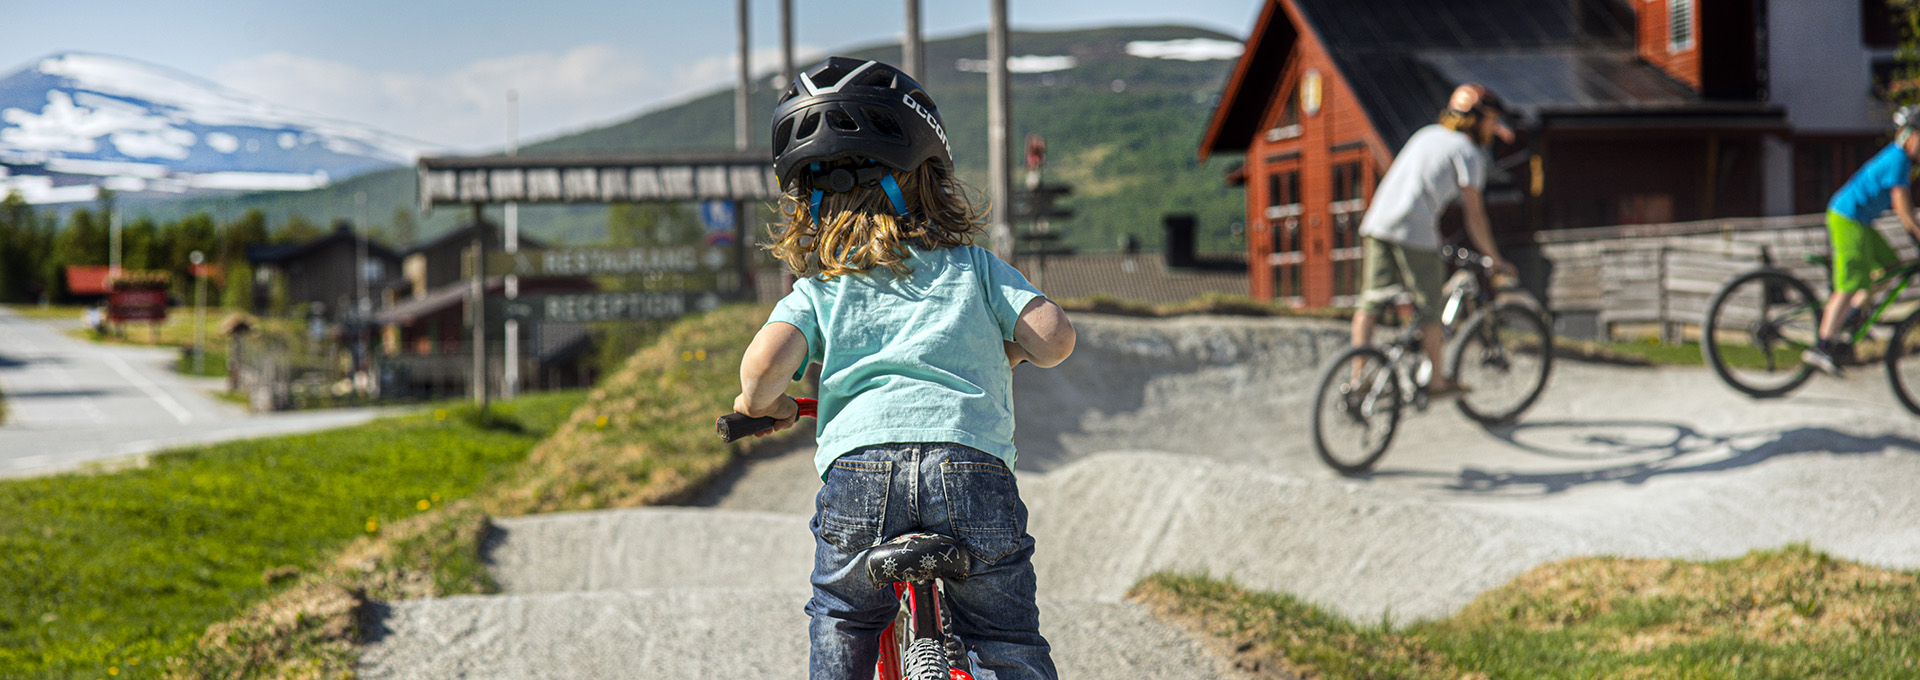 children and youths at the pump track in Ramundberget